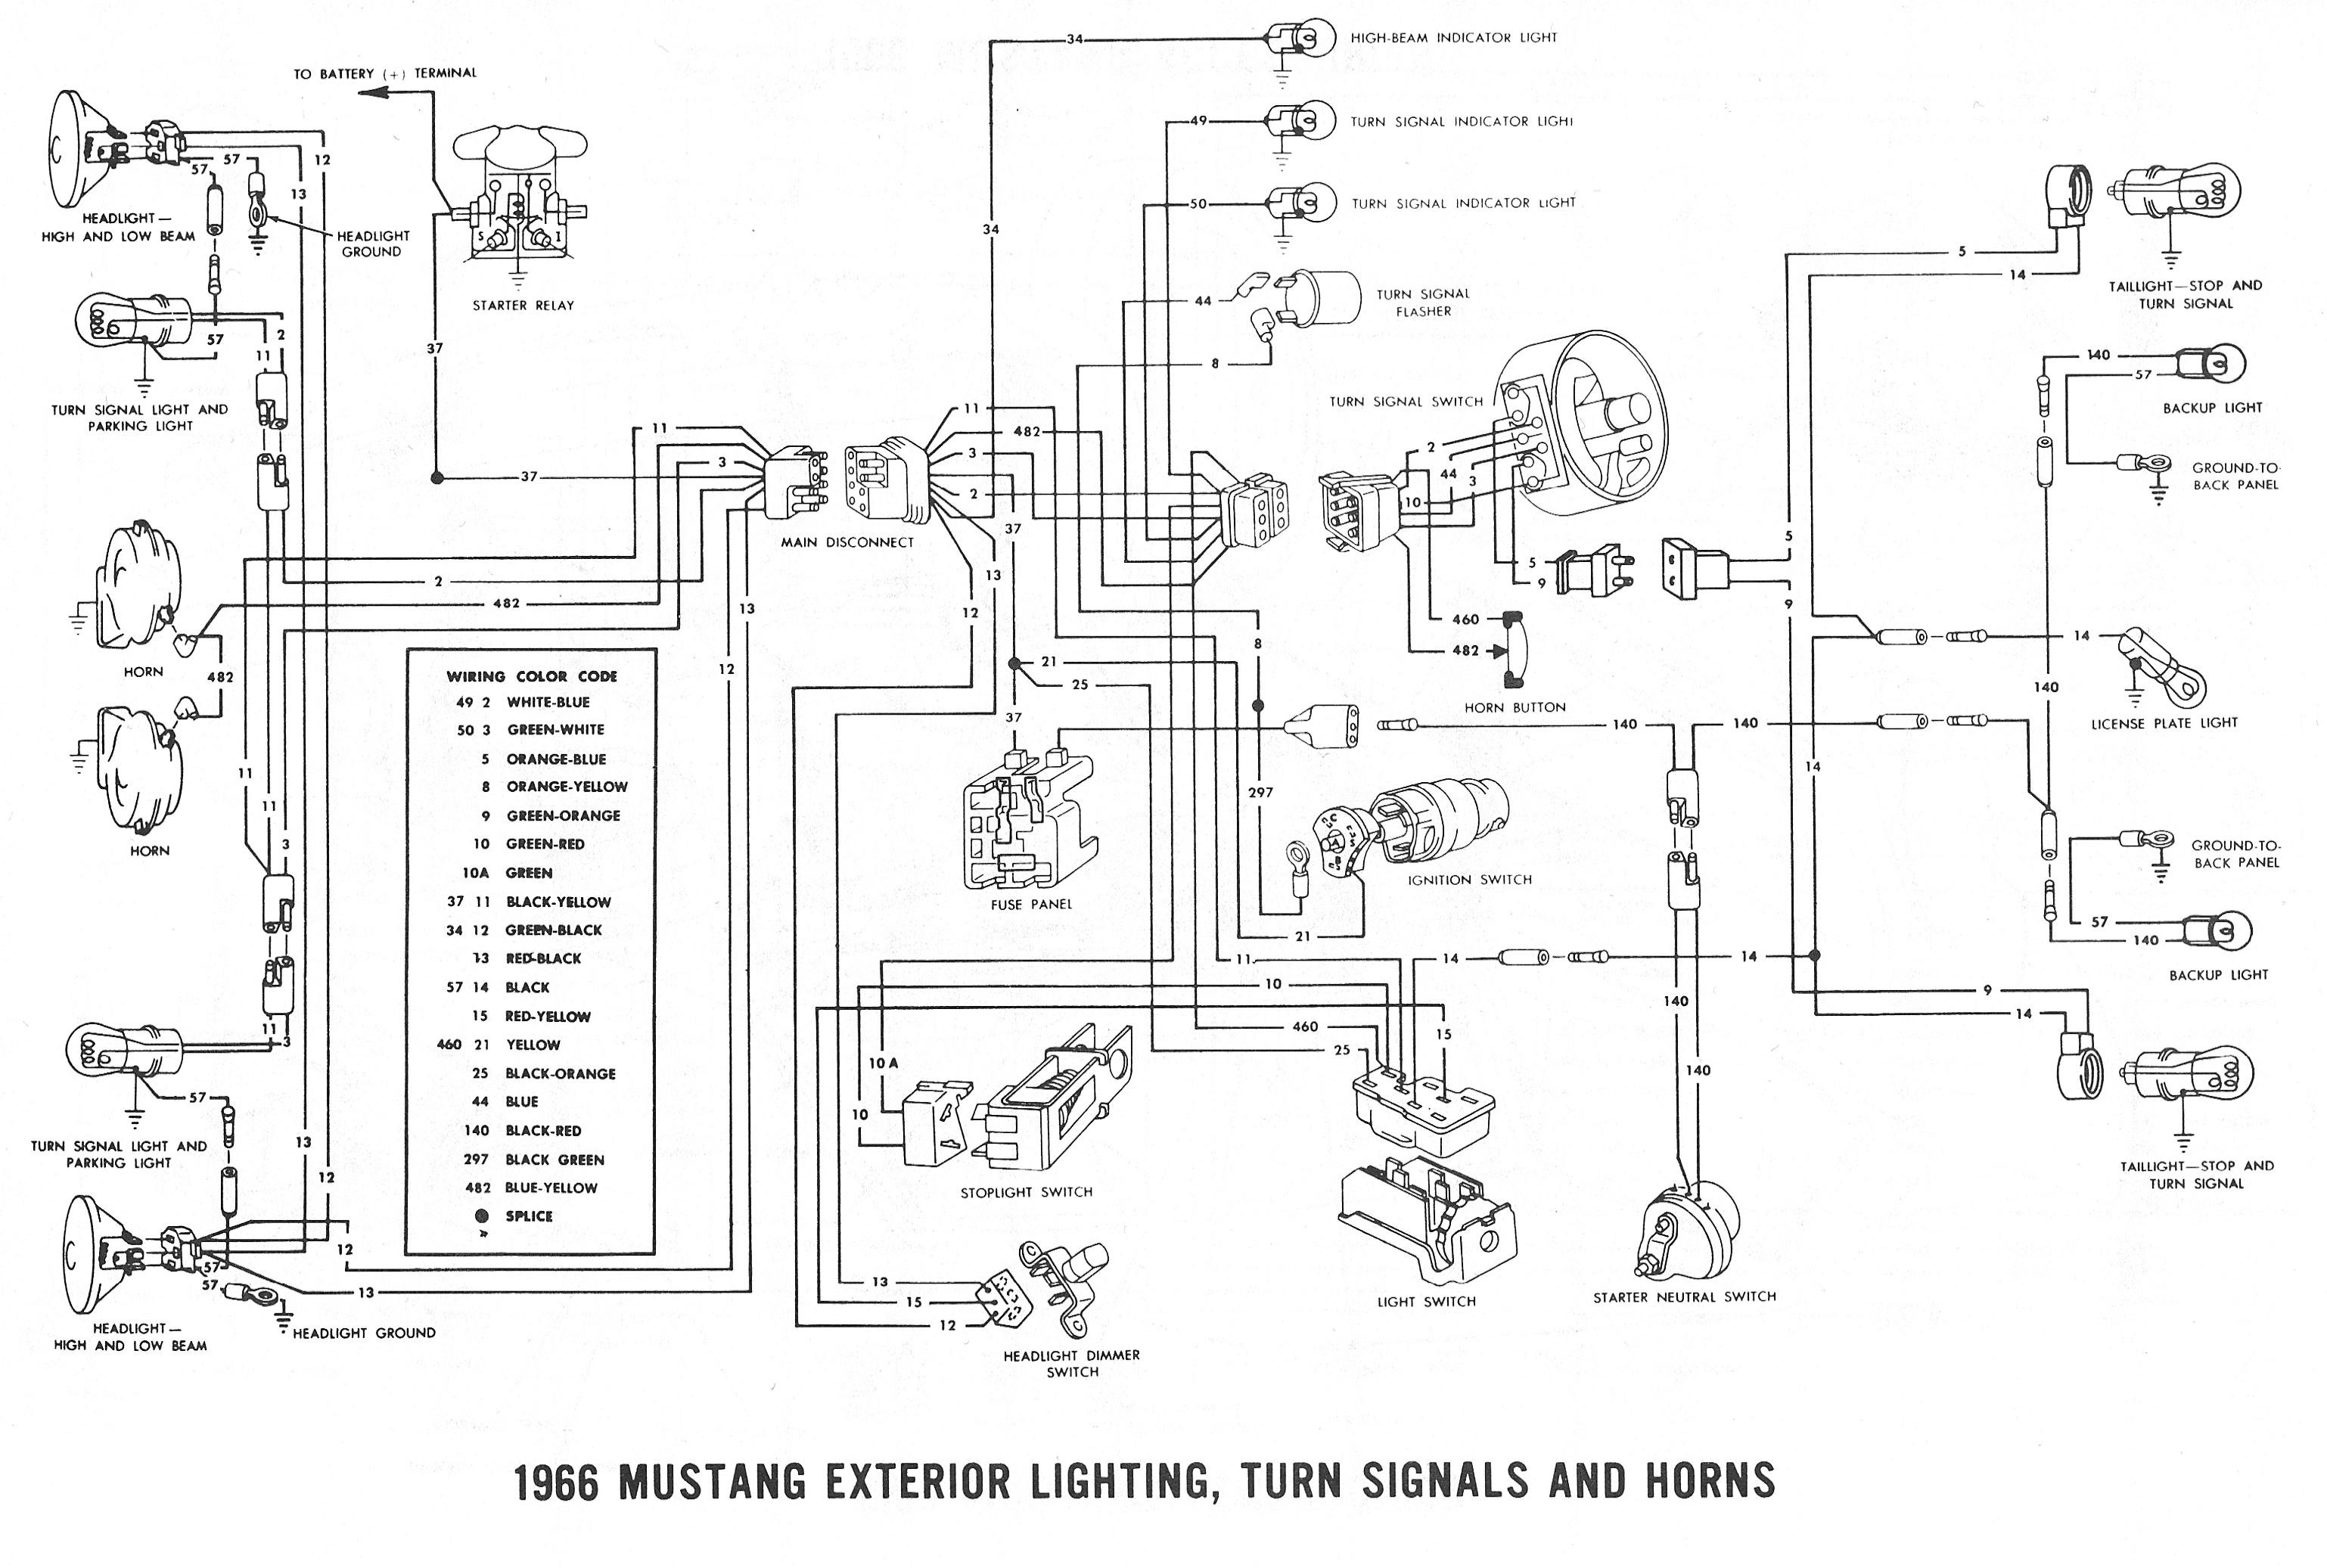 wiring diagram together with diagram ford ranger alternator wiring